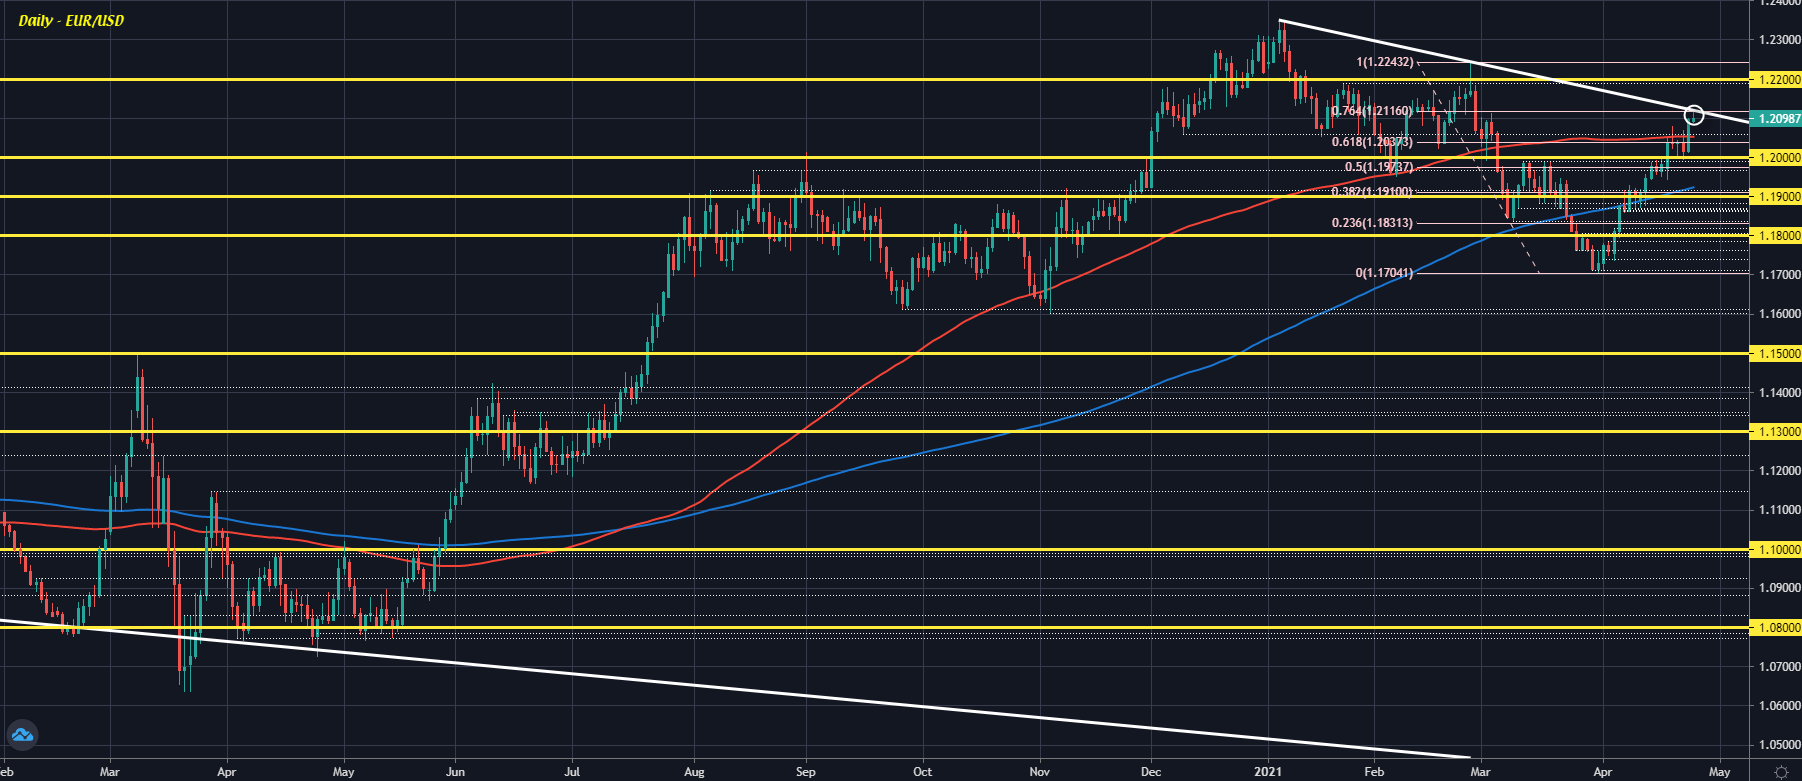 EUR/USD looks to try and stay above 1.2100 but faces key trendline resistance